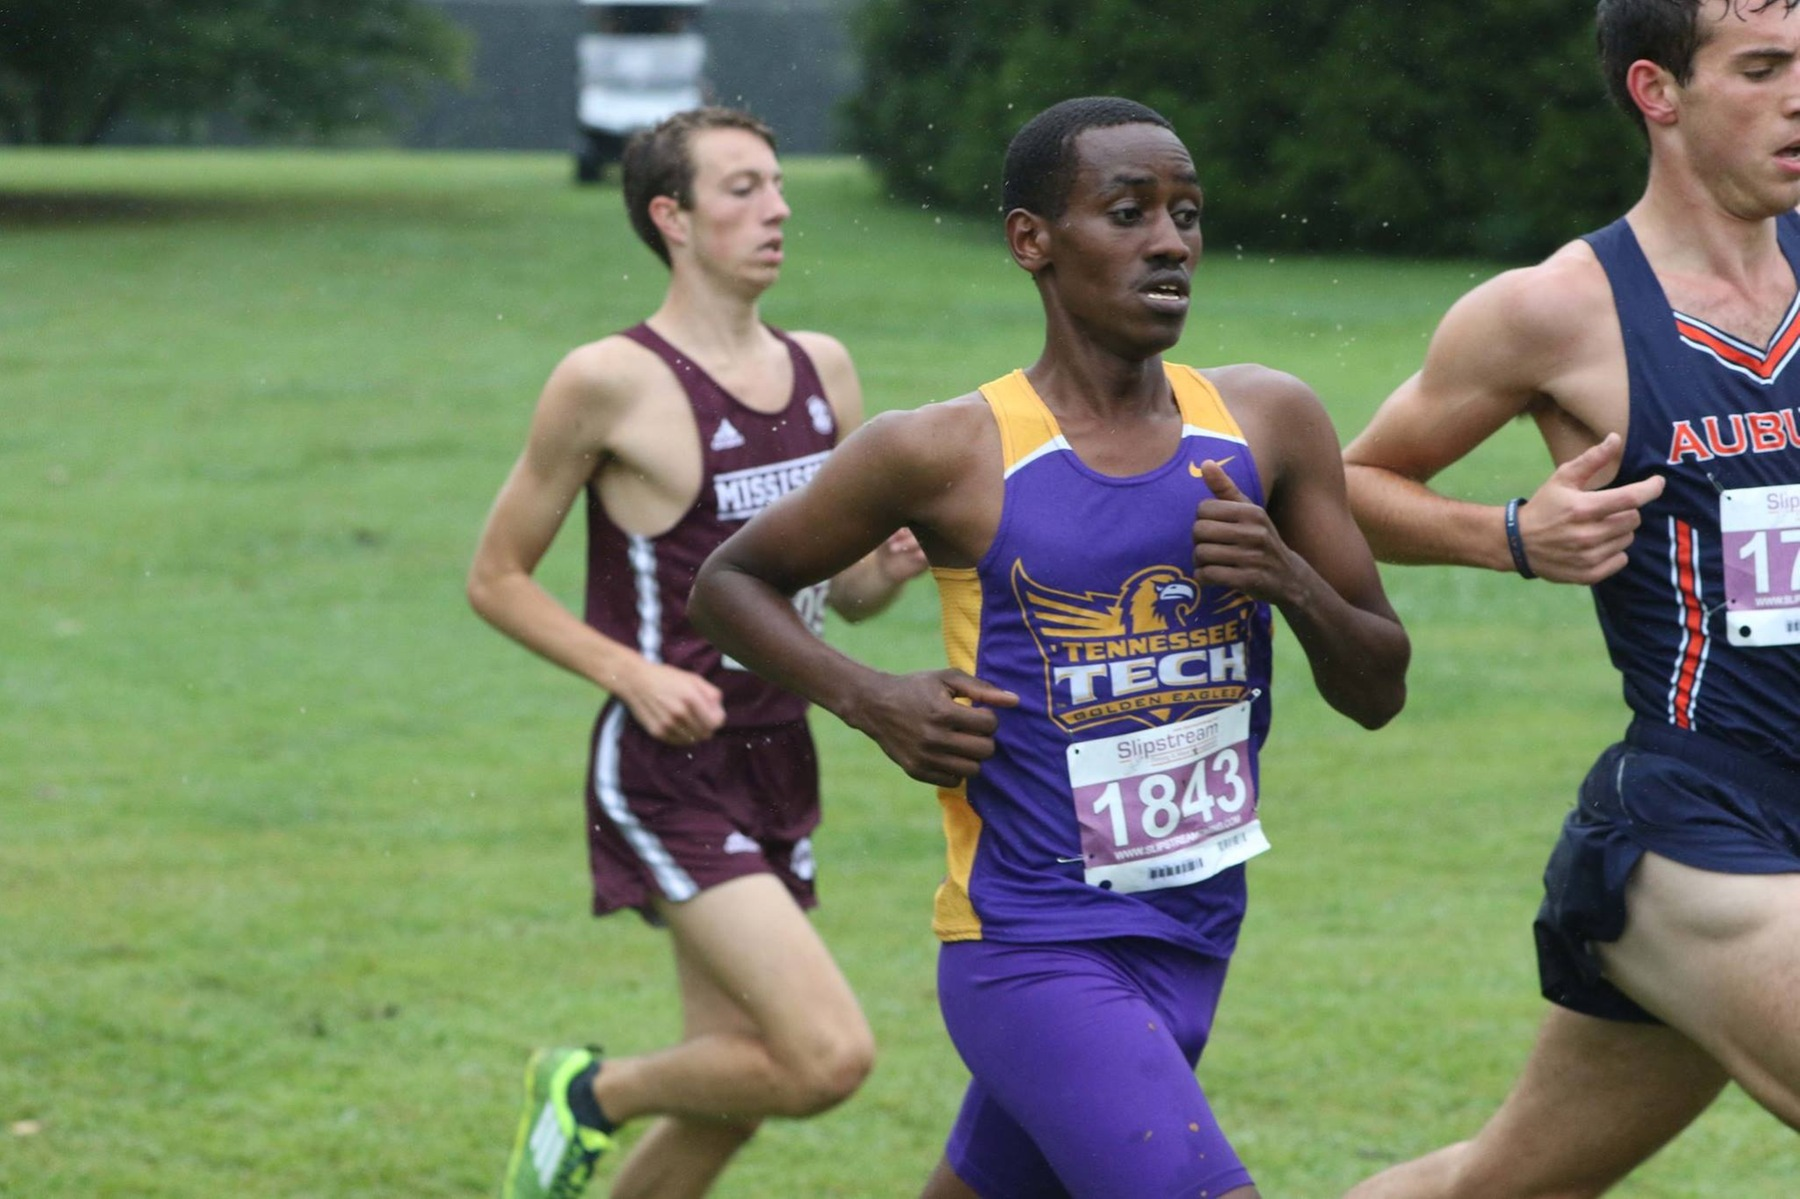 Men's cross country at 12th in latest USTFCCCA South Region rankings